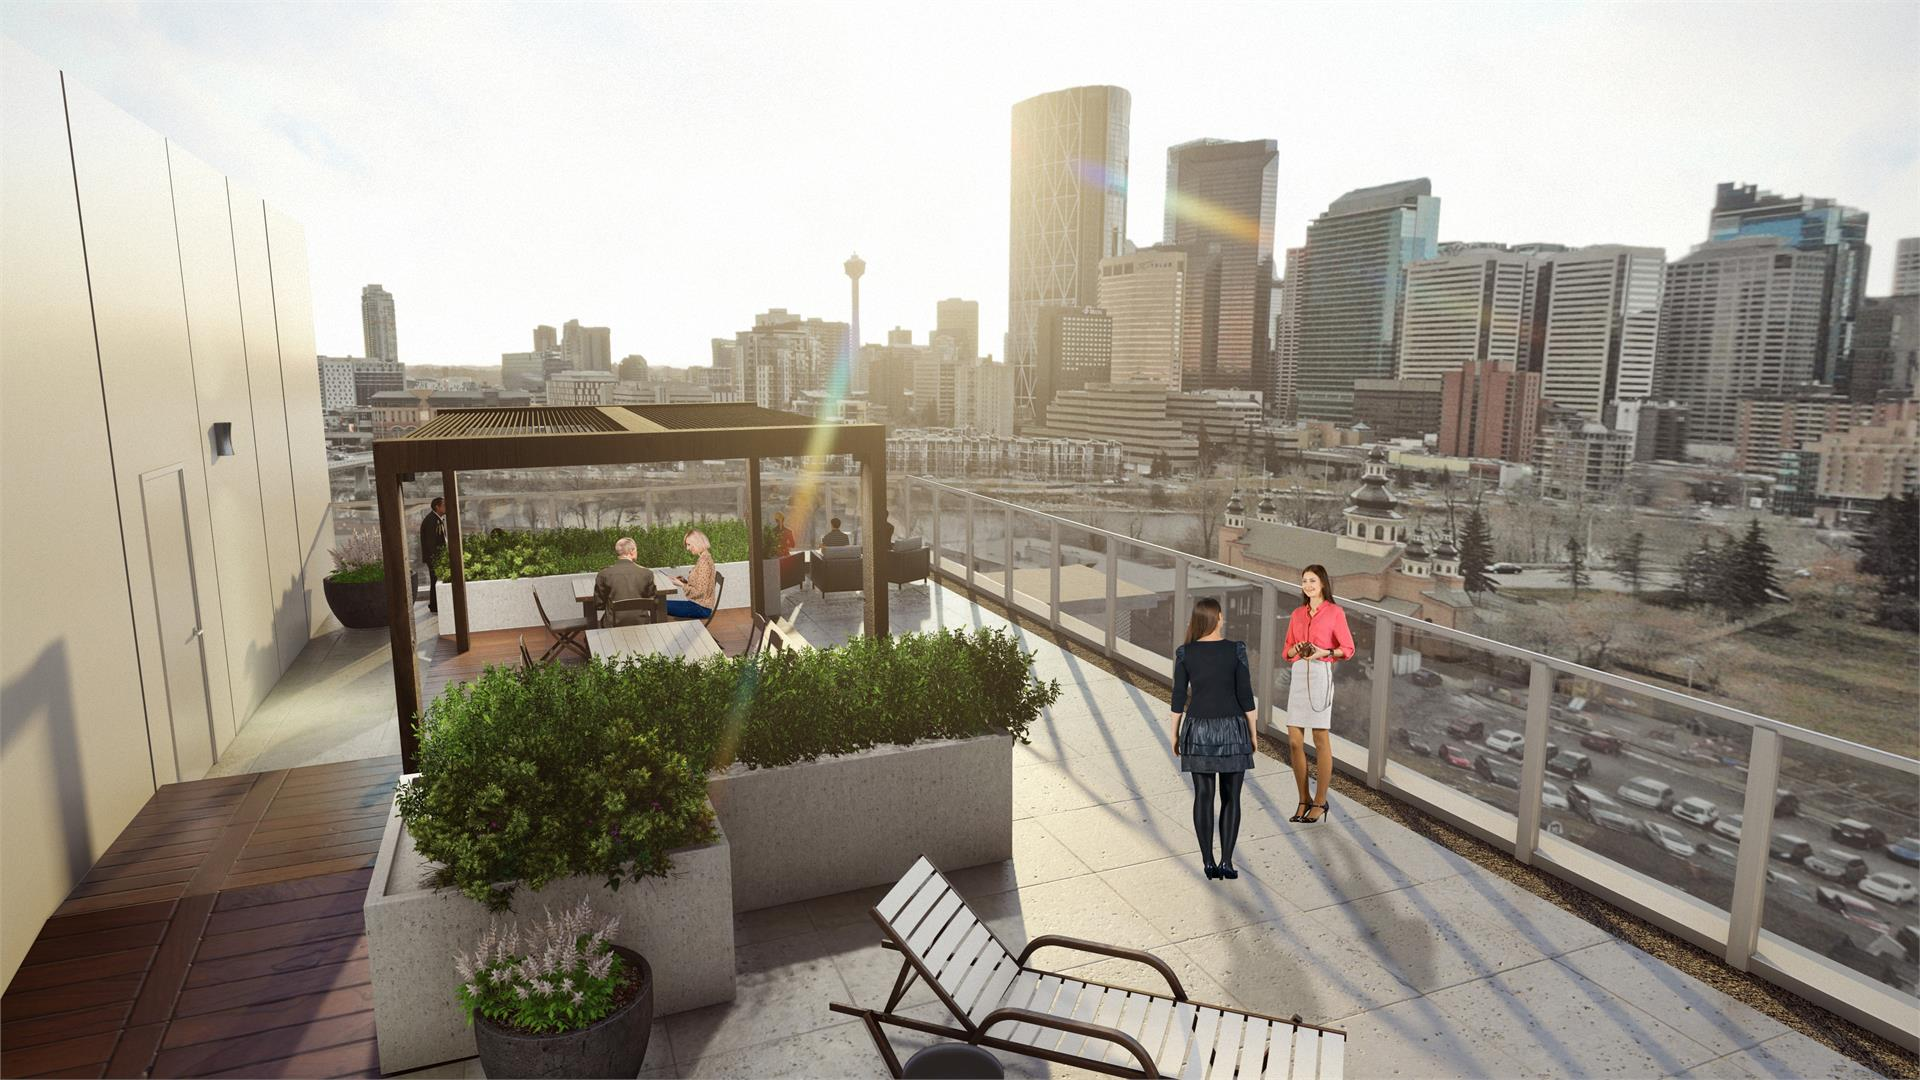 Rendering of Era Condos rooftop terrace with seating and lounge chairs.